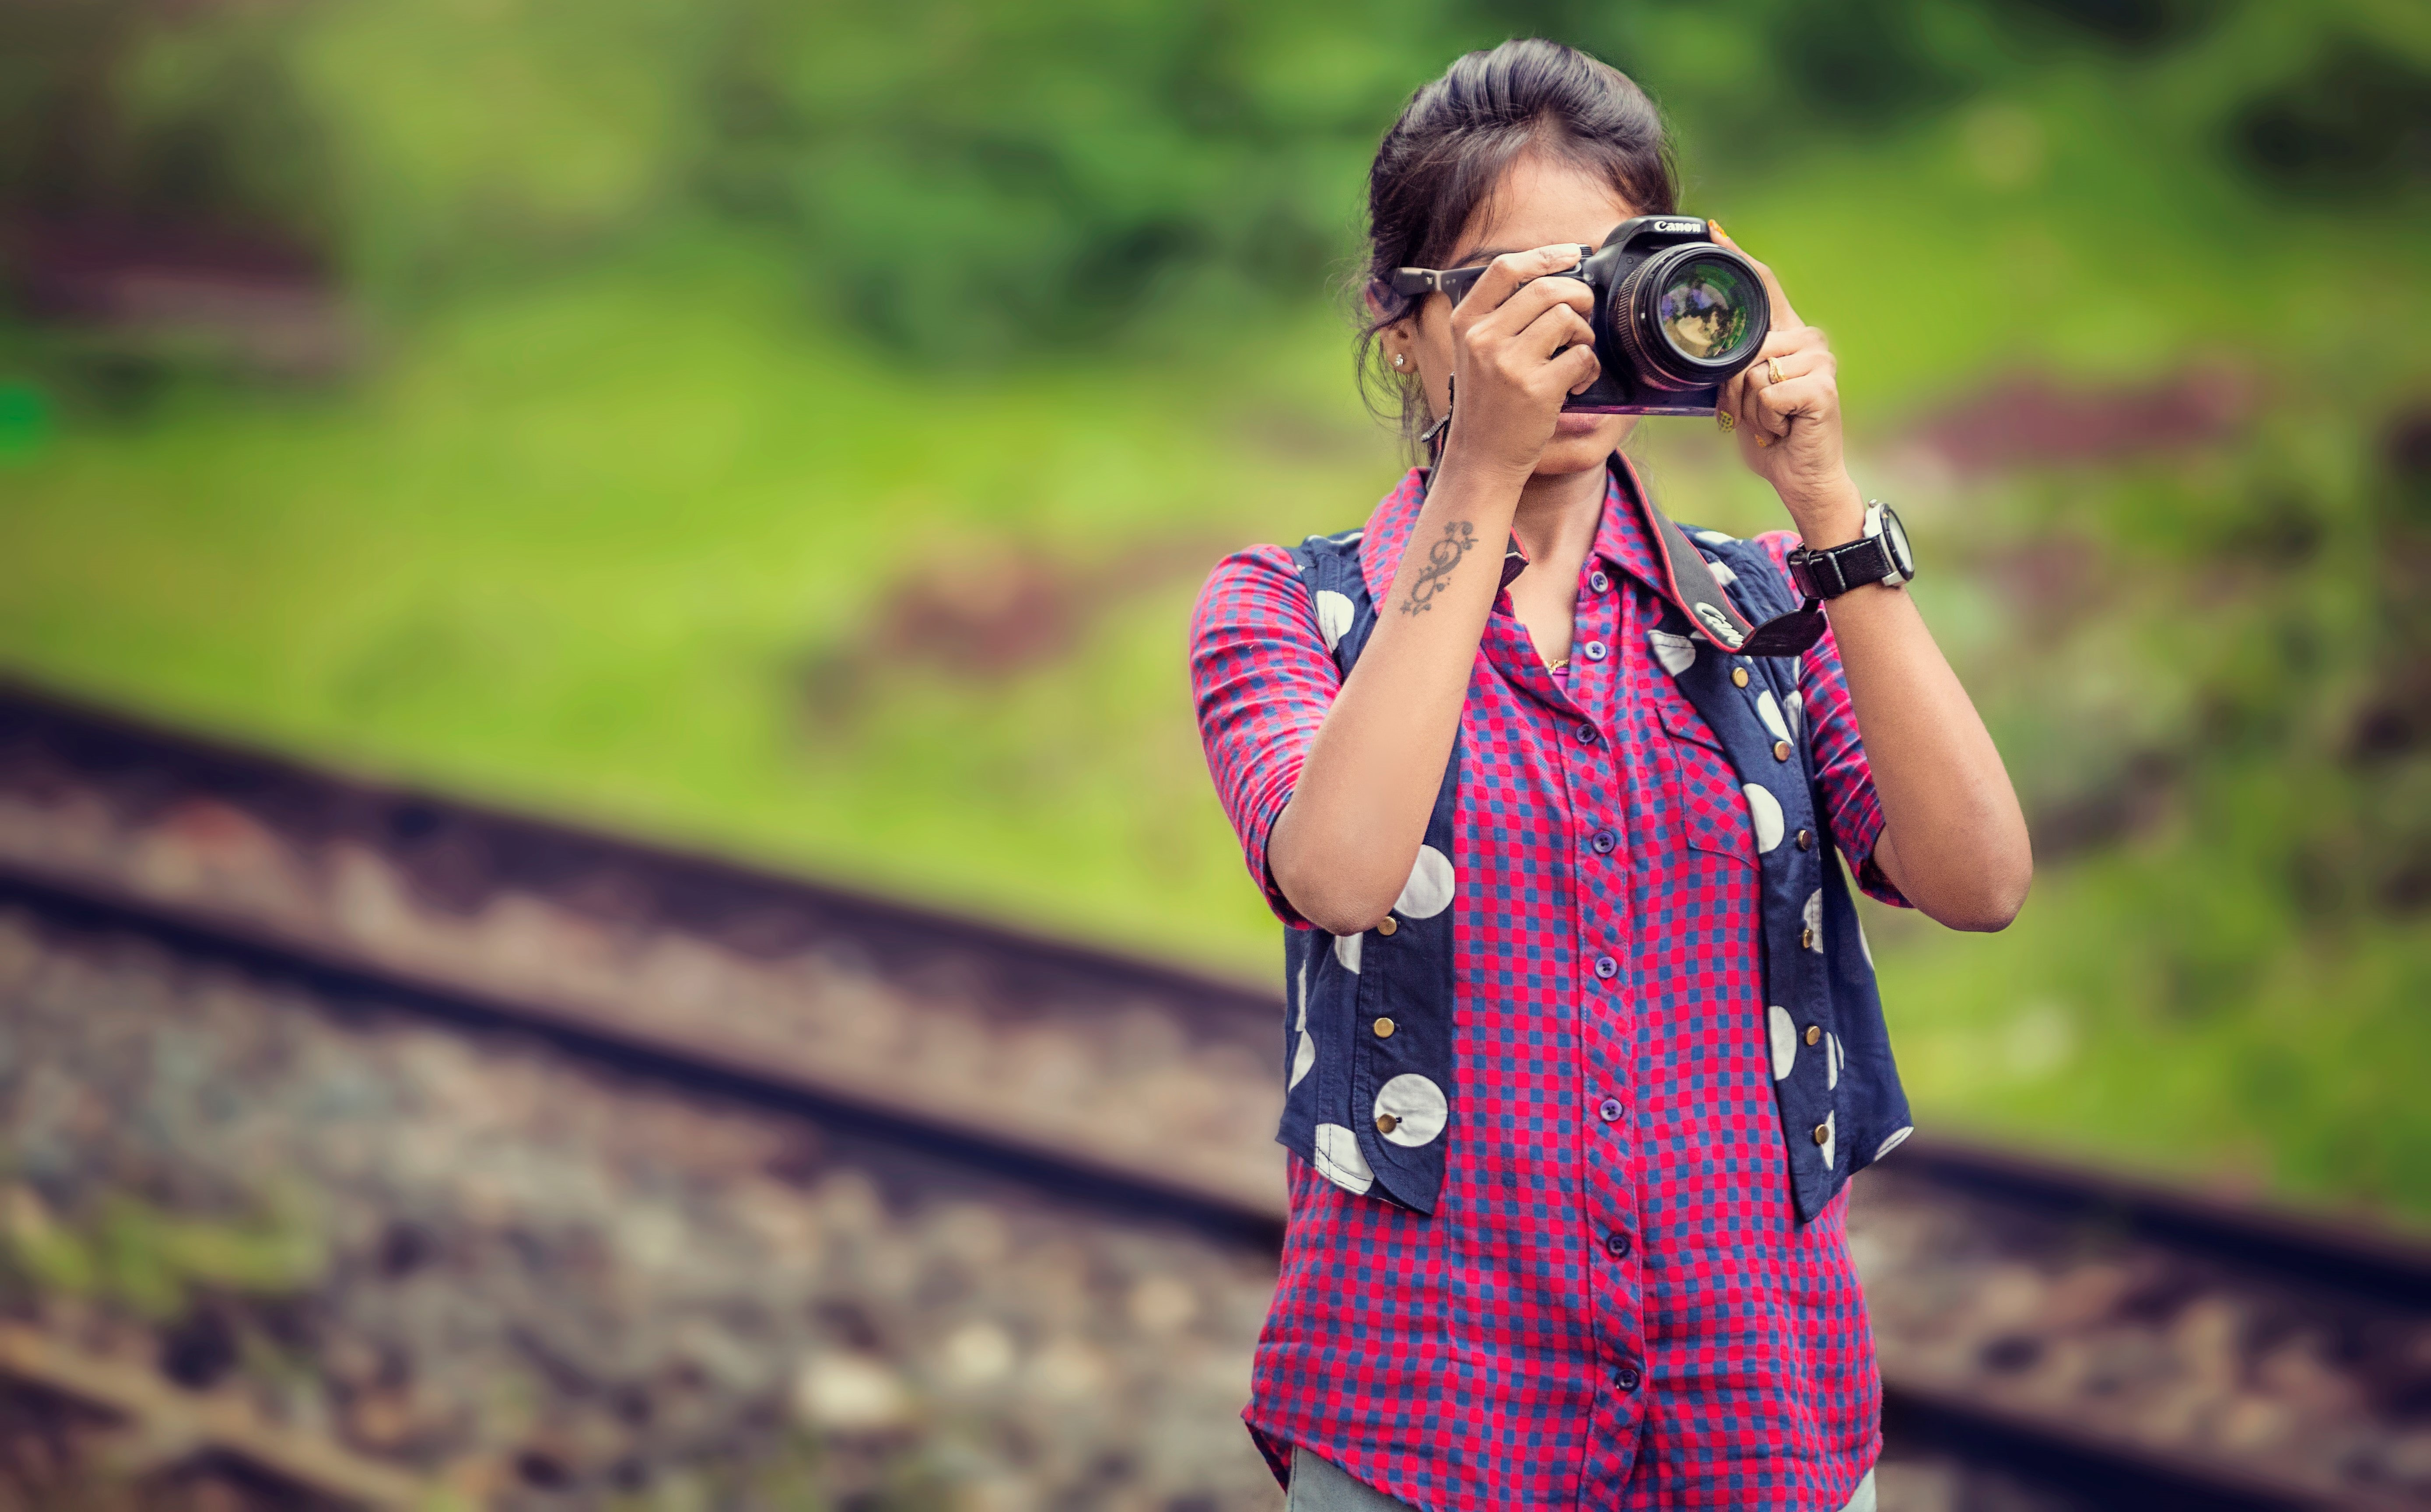 Woman wearing pink shirt, blue vest and watch while taking pictures with a camera